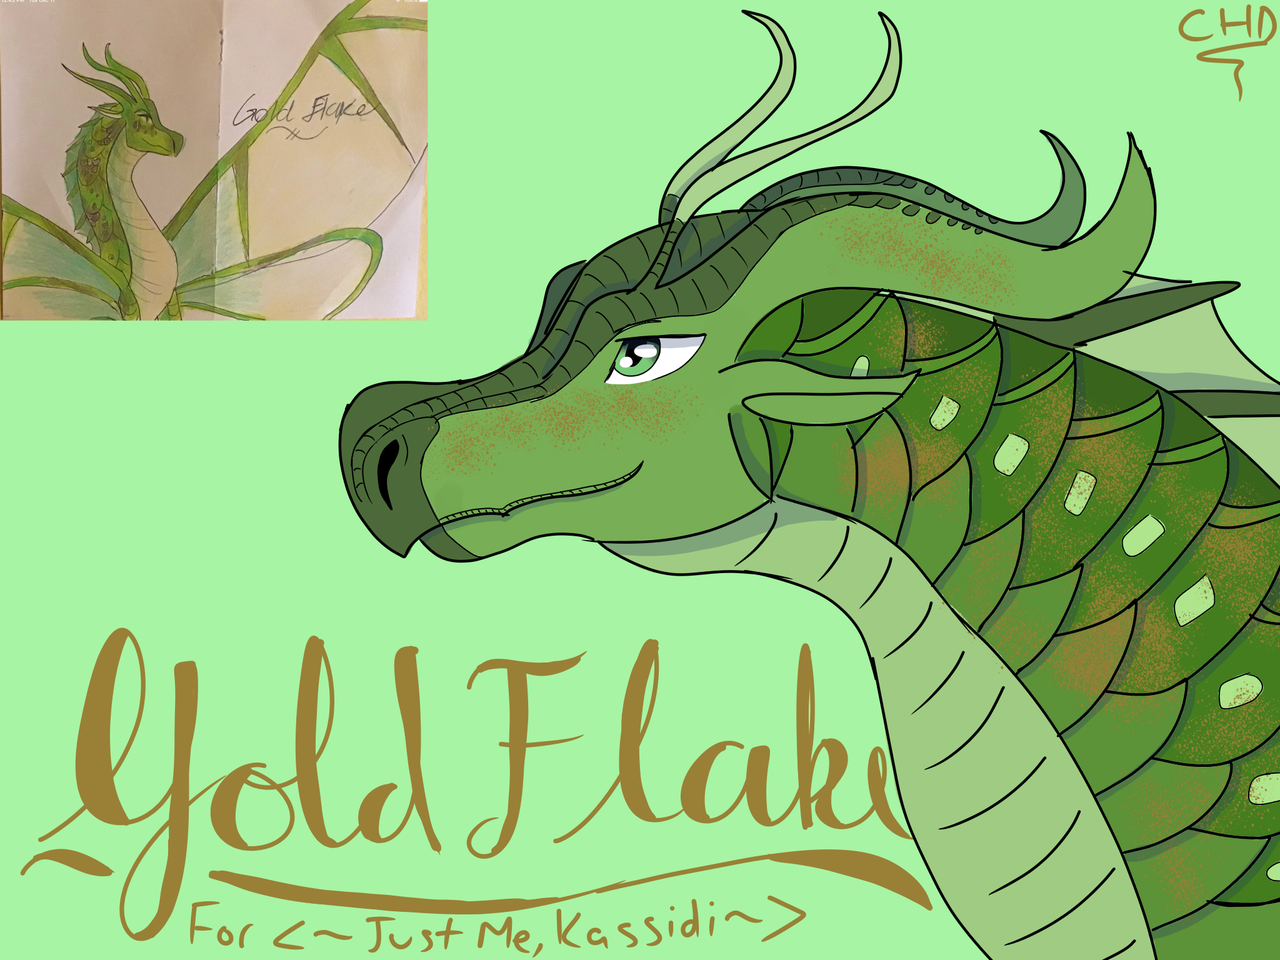 Gold Flake — Redraw for <~Just Me, Kassidi~>